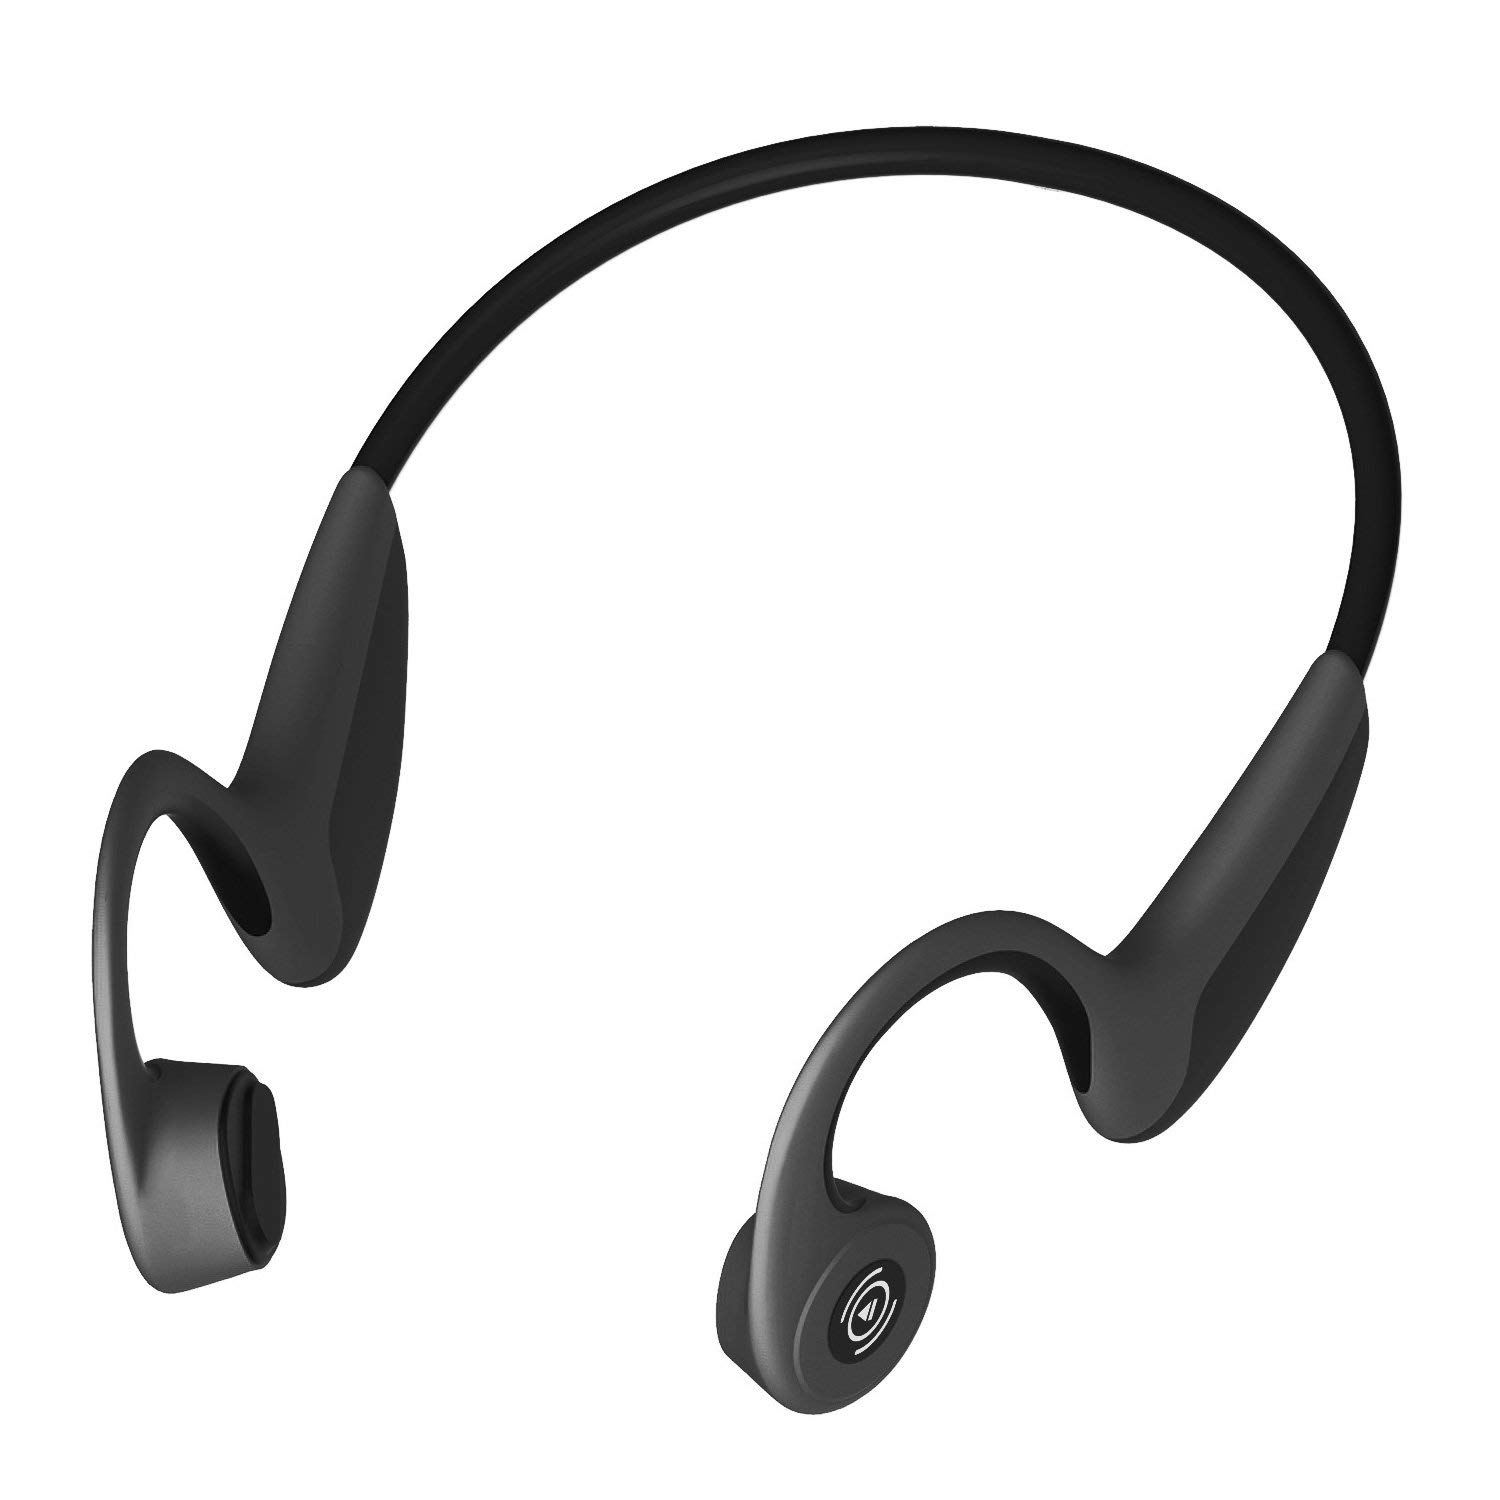 Bone Conduction Headphones Bluetooth Wireless Sports Headsets IP55 Waterproof Built In HiFi Stereo Horn Produces with Mic for